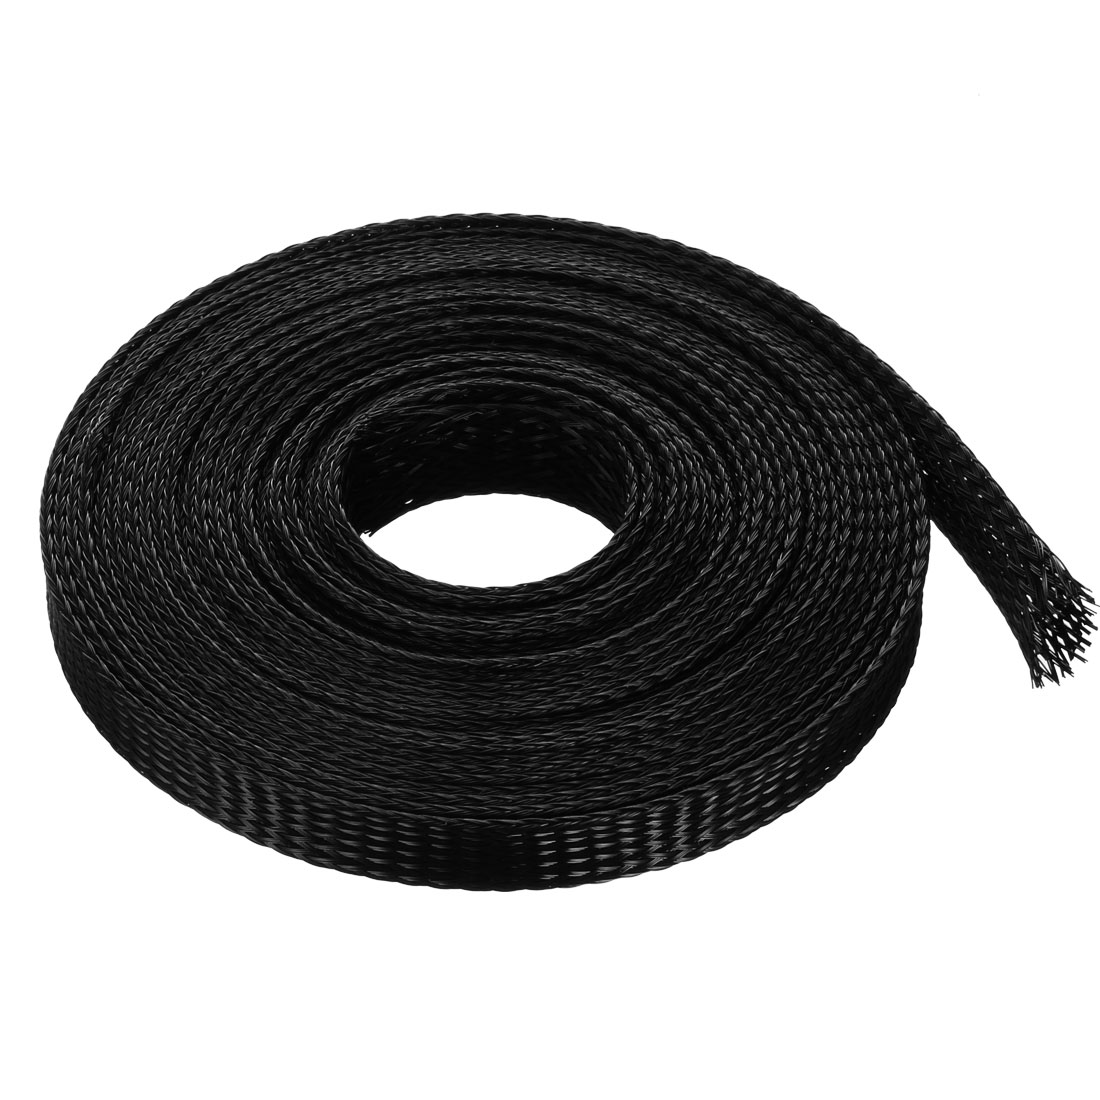 8mm Diameter PET Electric Cable Wrap Expandable Braided Sleeving 5 Meters Length